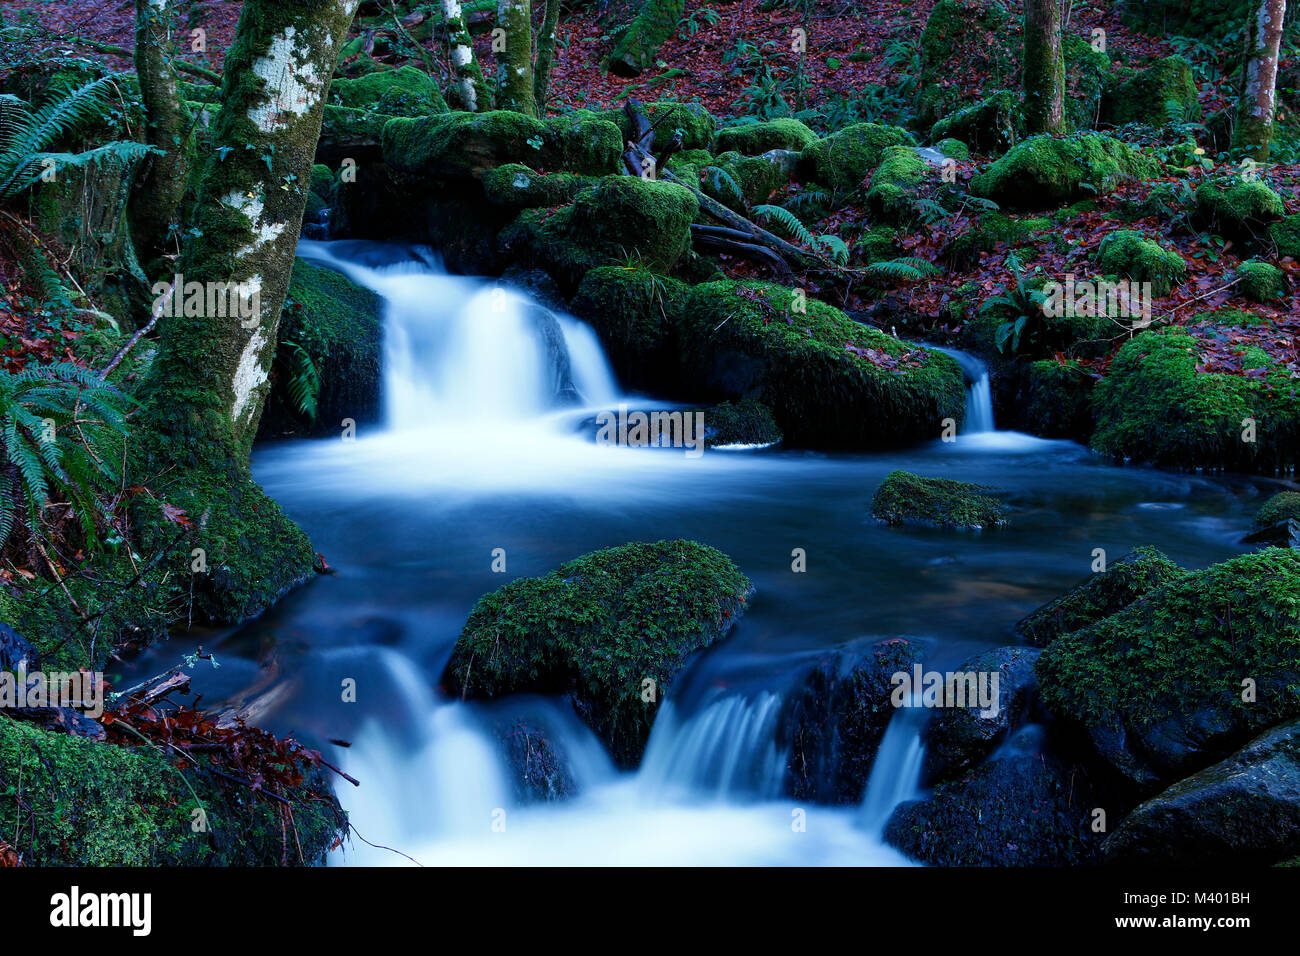 Buckland woods stunning scenery with the river flowing through - Stock Image